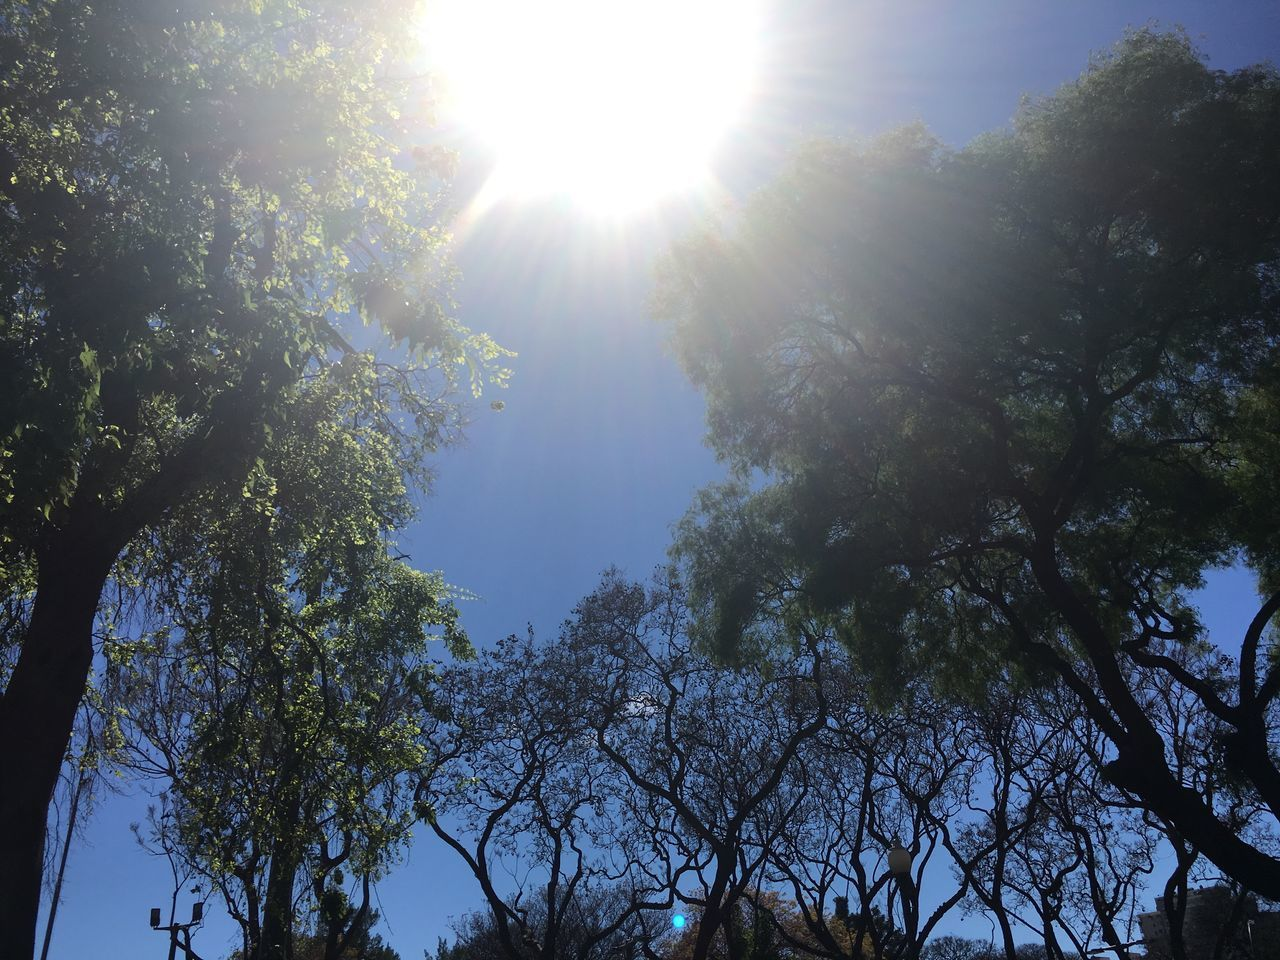 tree, nature, low angle view, sunbeam, beauty in nature, sunlight, day, sunny, growth, lens flare, sun, tranquility, no people, outdoors, branch, scenics, sunshine, sky, freshness